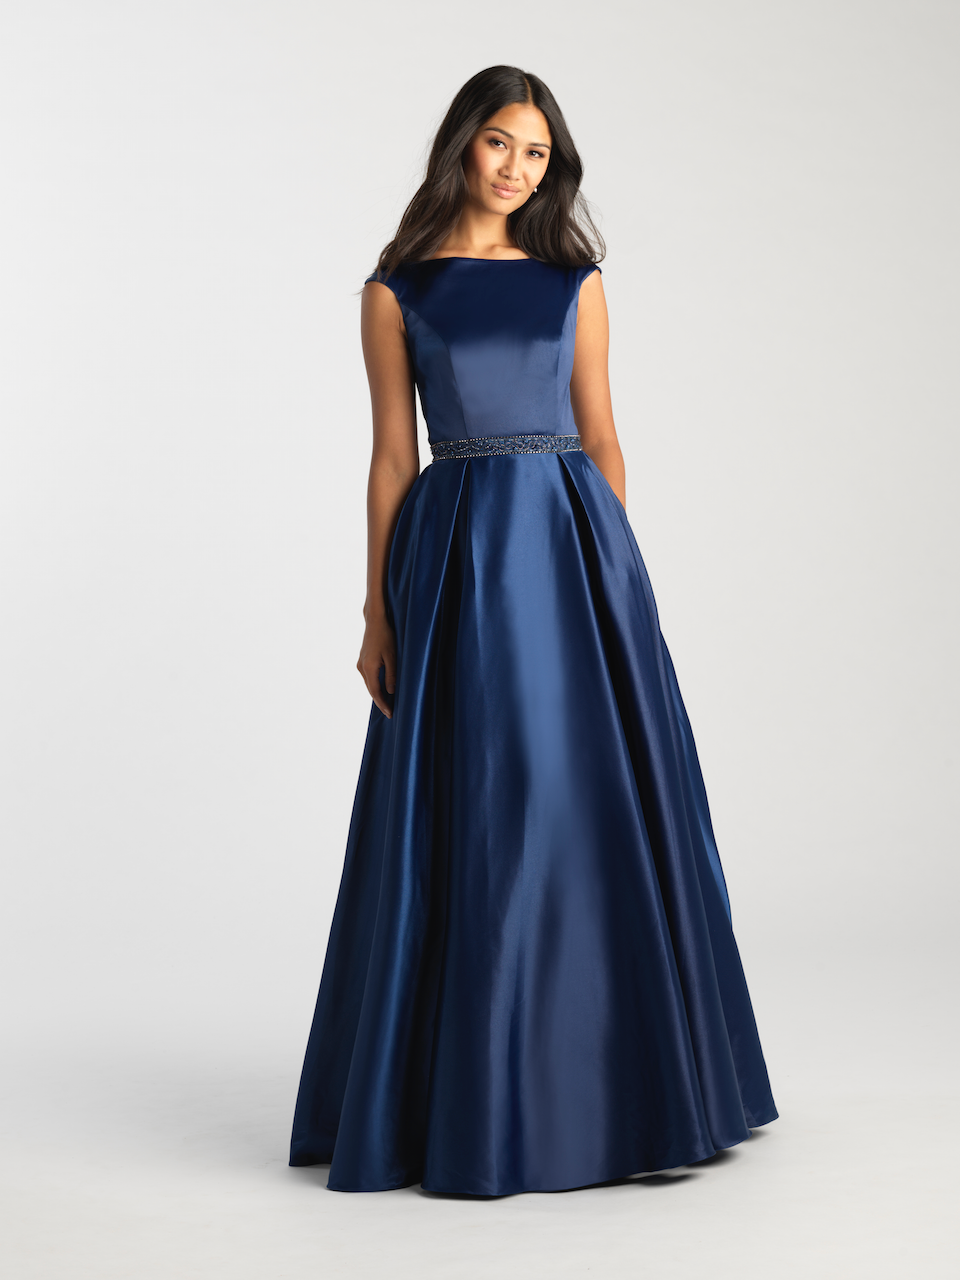 MJ 20-506M Navy Modest Prom Dress Ball Gown for plus size LDS formal